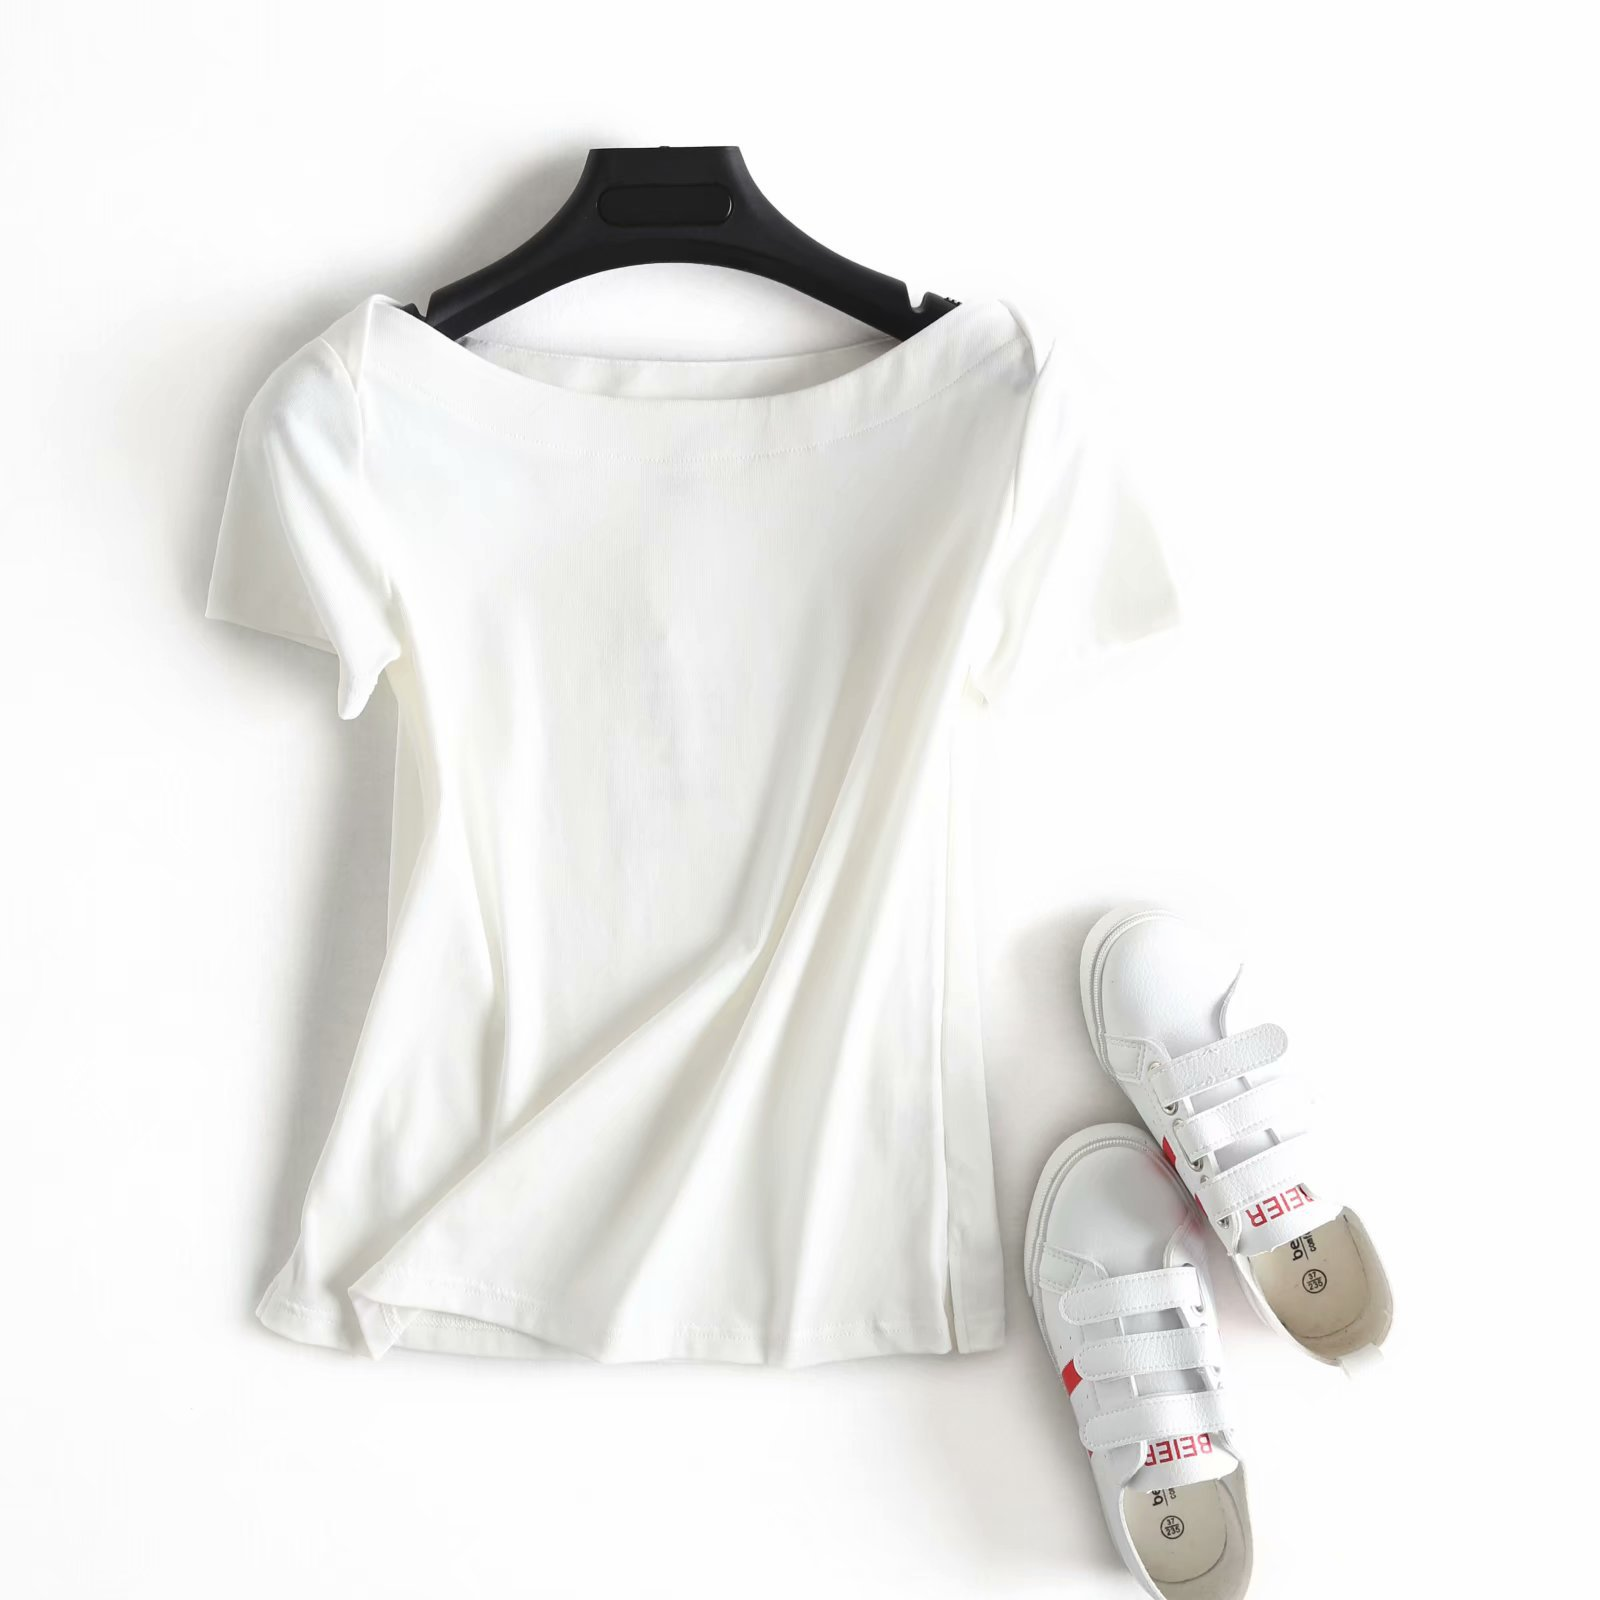 Shirt Print Women Tshirt Casual  Gray Funny T Shirt For Lady Top Tee Hipster